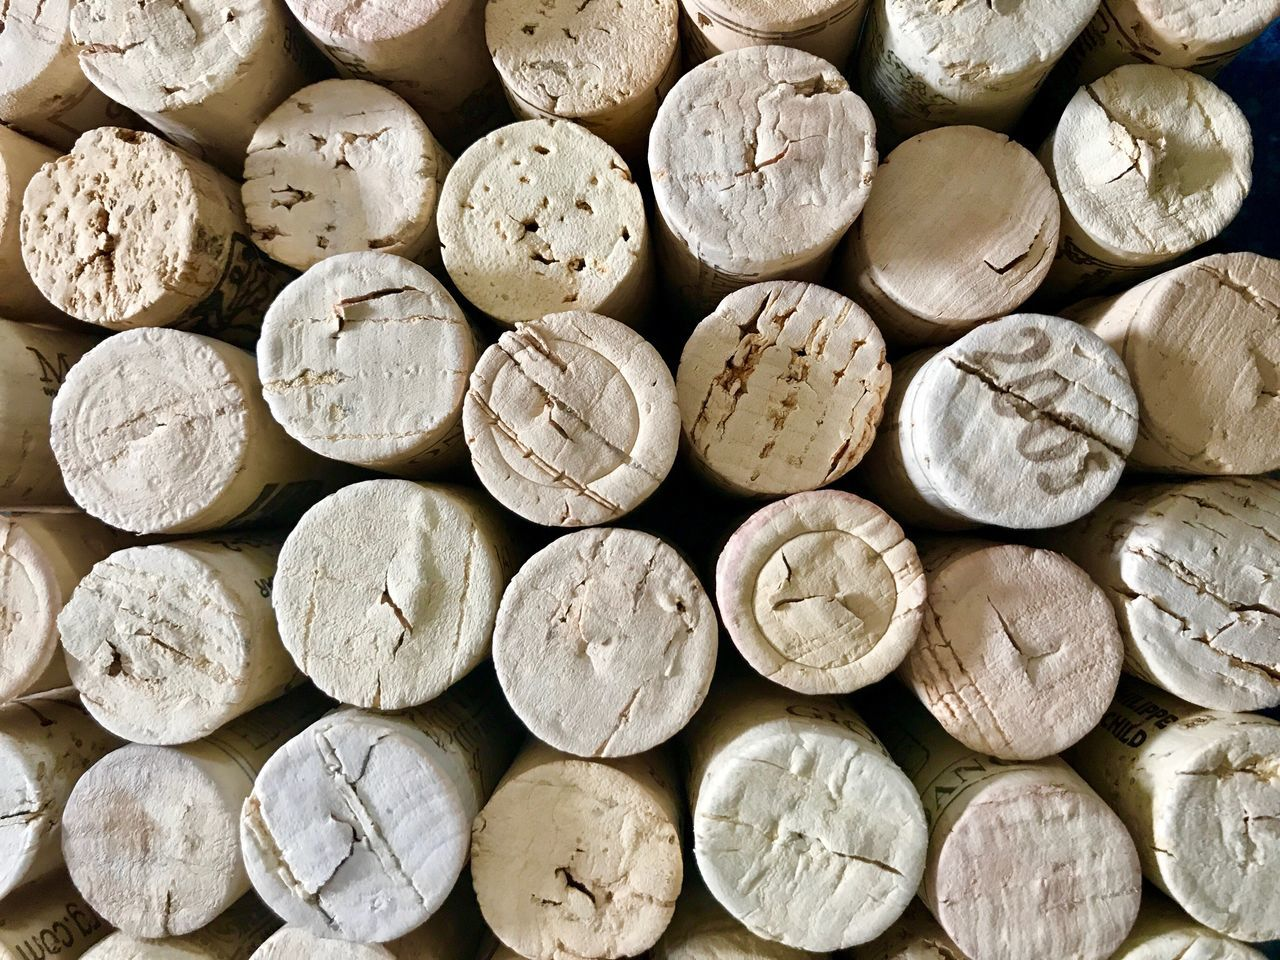 Wine Cork Cork - Stopper Backgrounds Textured  Full Frame No People Close-up Day Outdoors Vine - Plant Wine Cask Winetasting Textured  Wine Cork Indoors  Winery Arrangement Winemaking